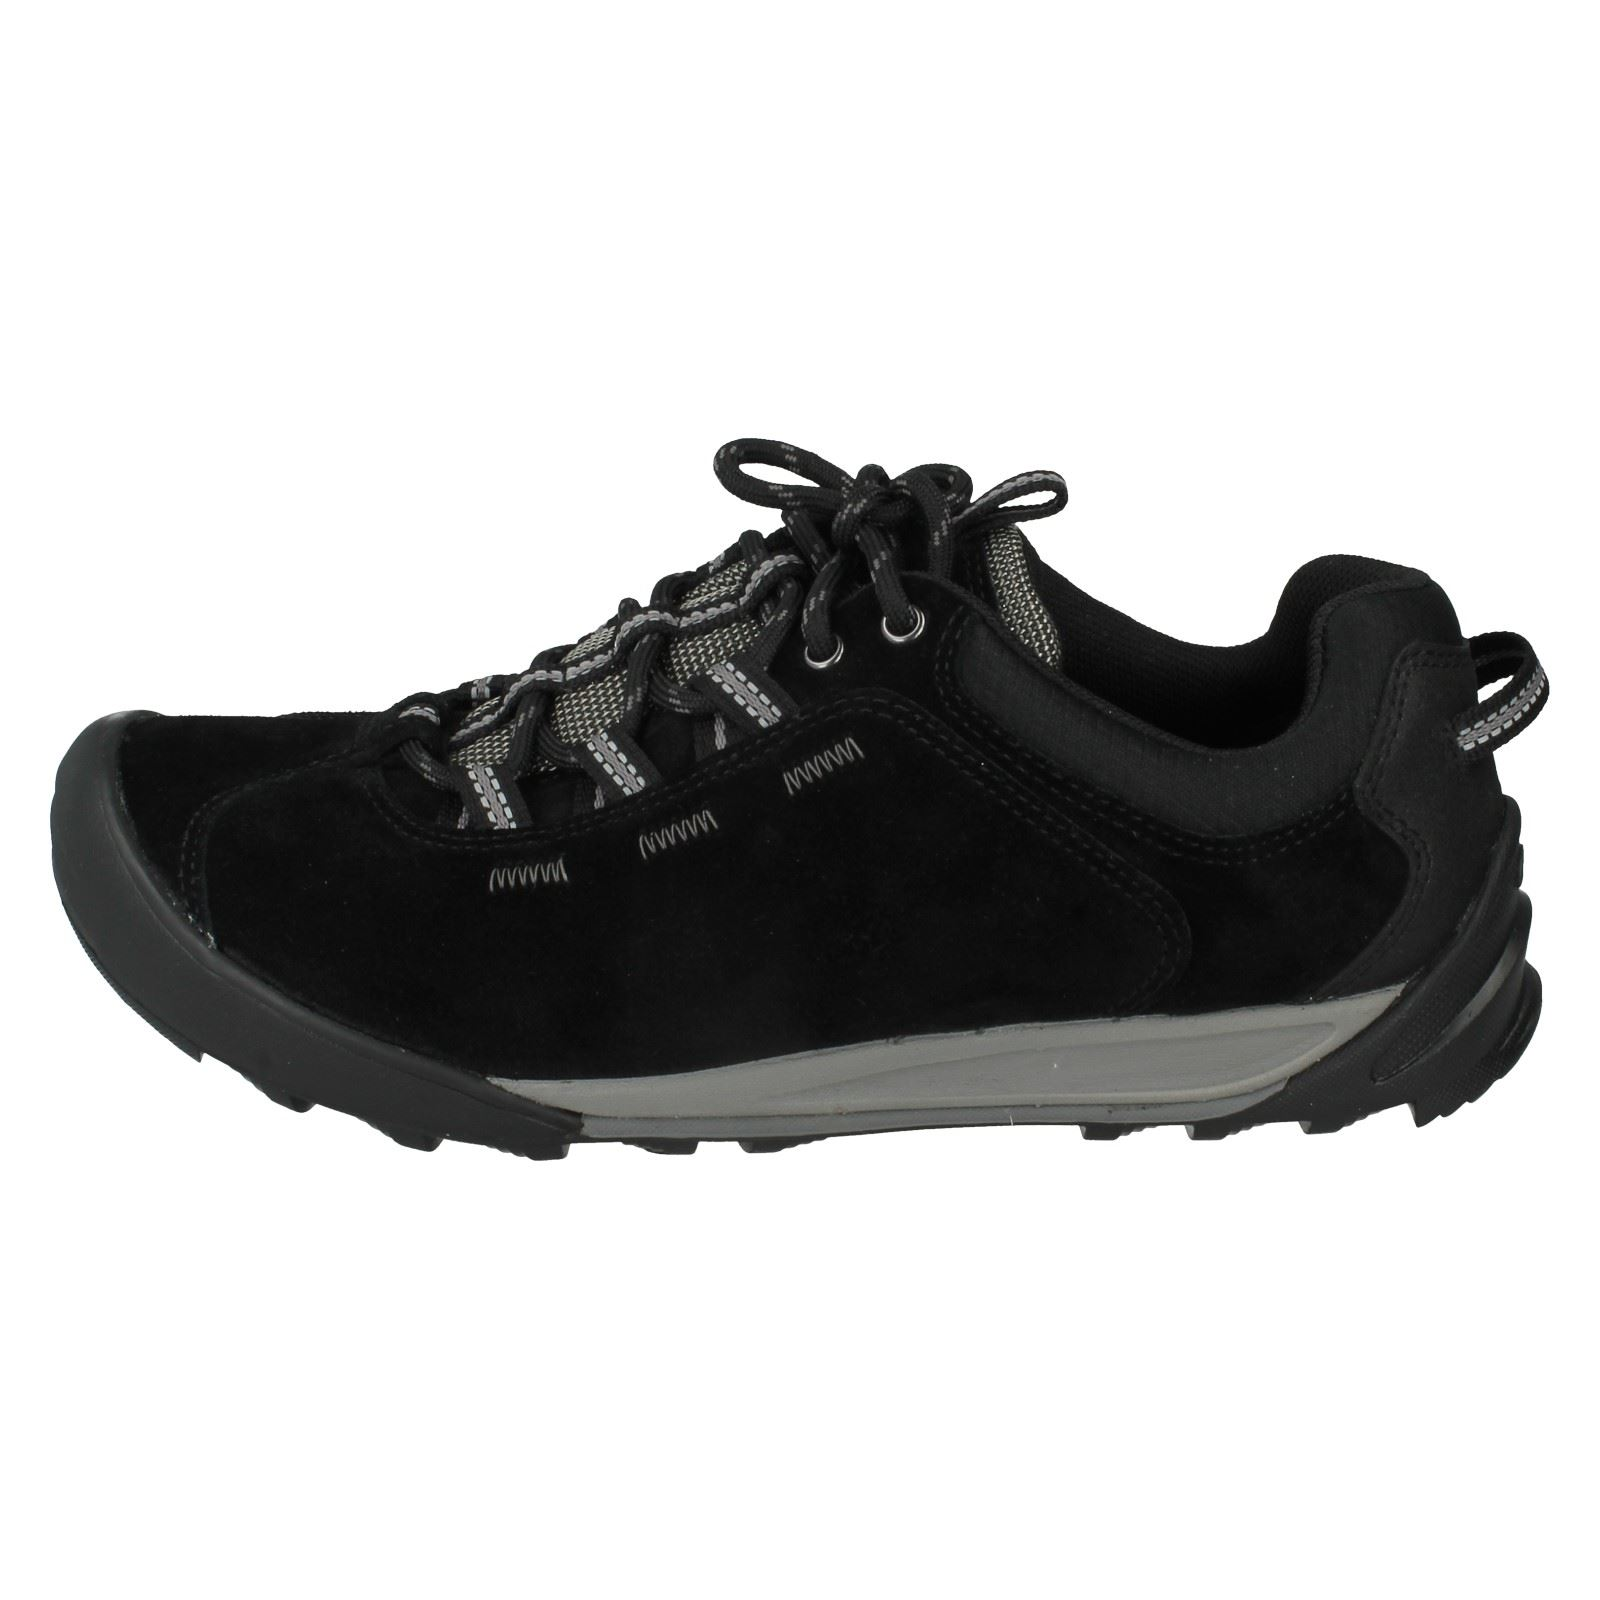 Ladies Clarks Style Outdoor Trainers Style Clarks - Outlay West 13c503